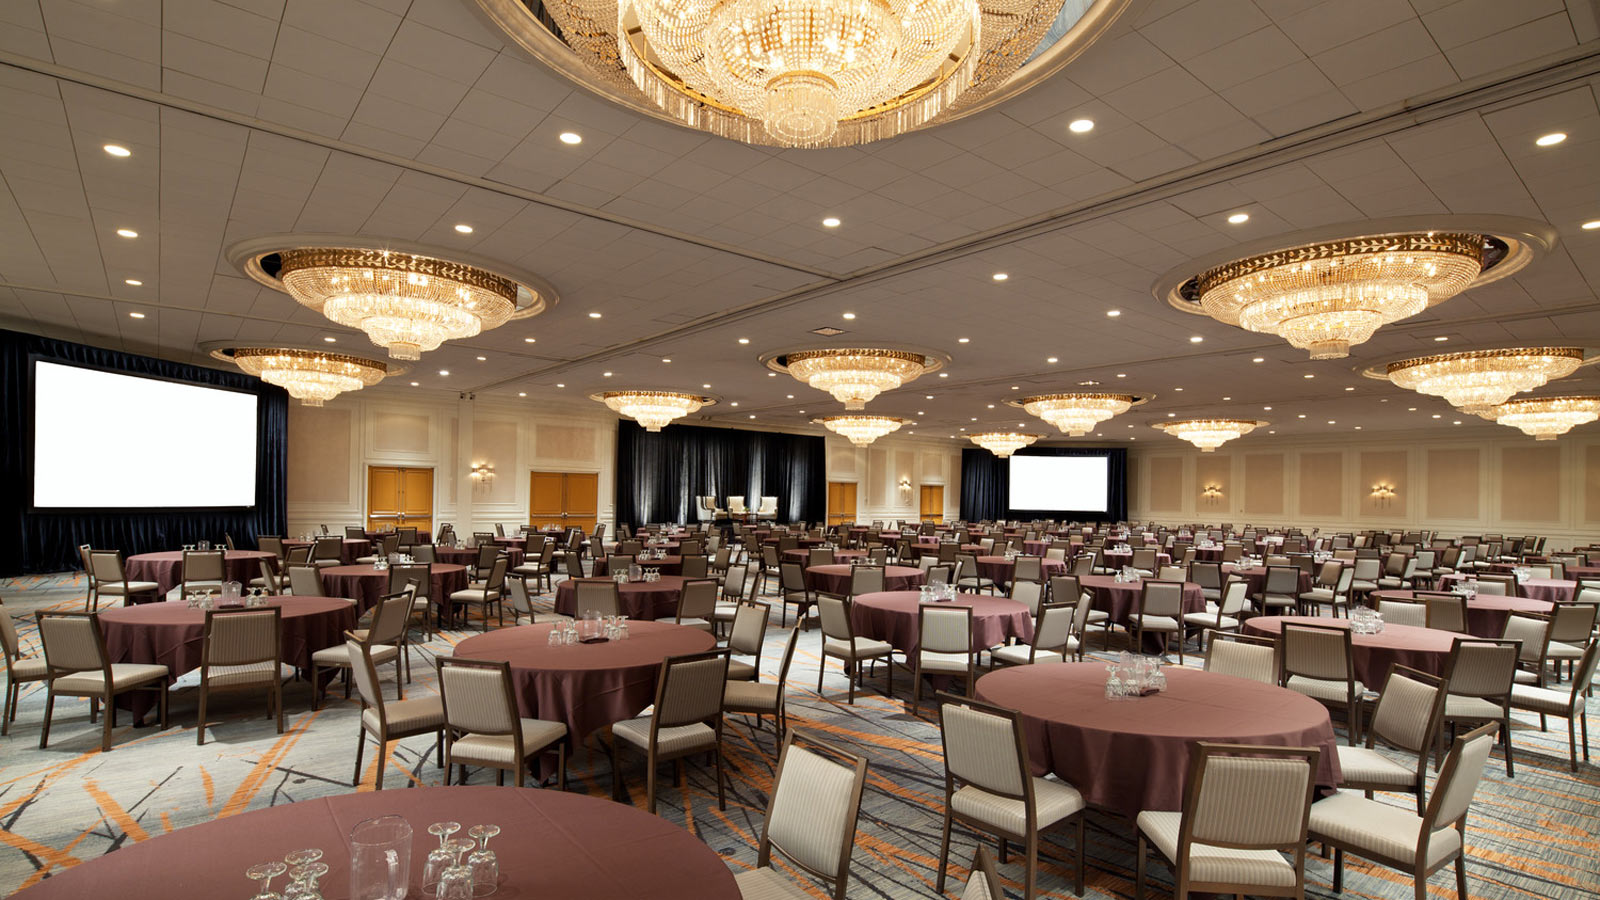 The Westin Galleria Houston - Galleria Ballroom